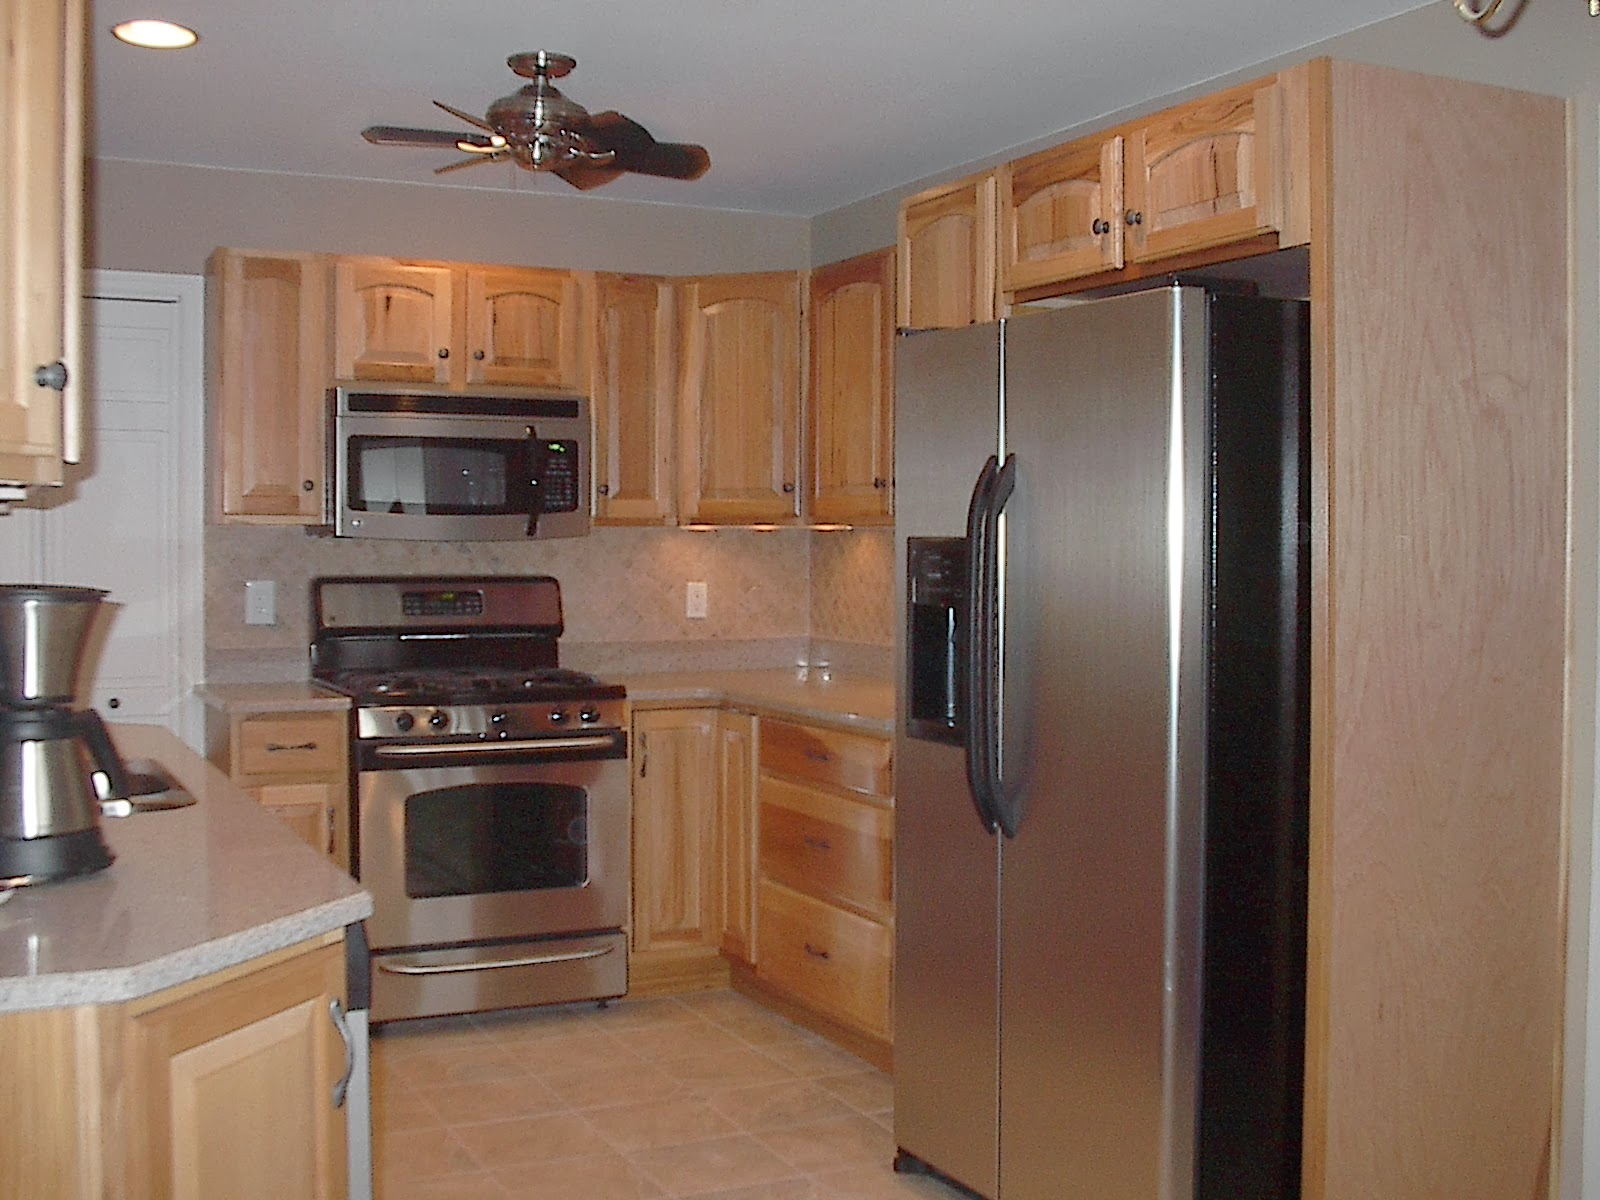 Cabinets for Kitchen or Bathroom Remodeling from Contractor